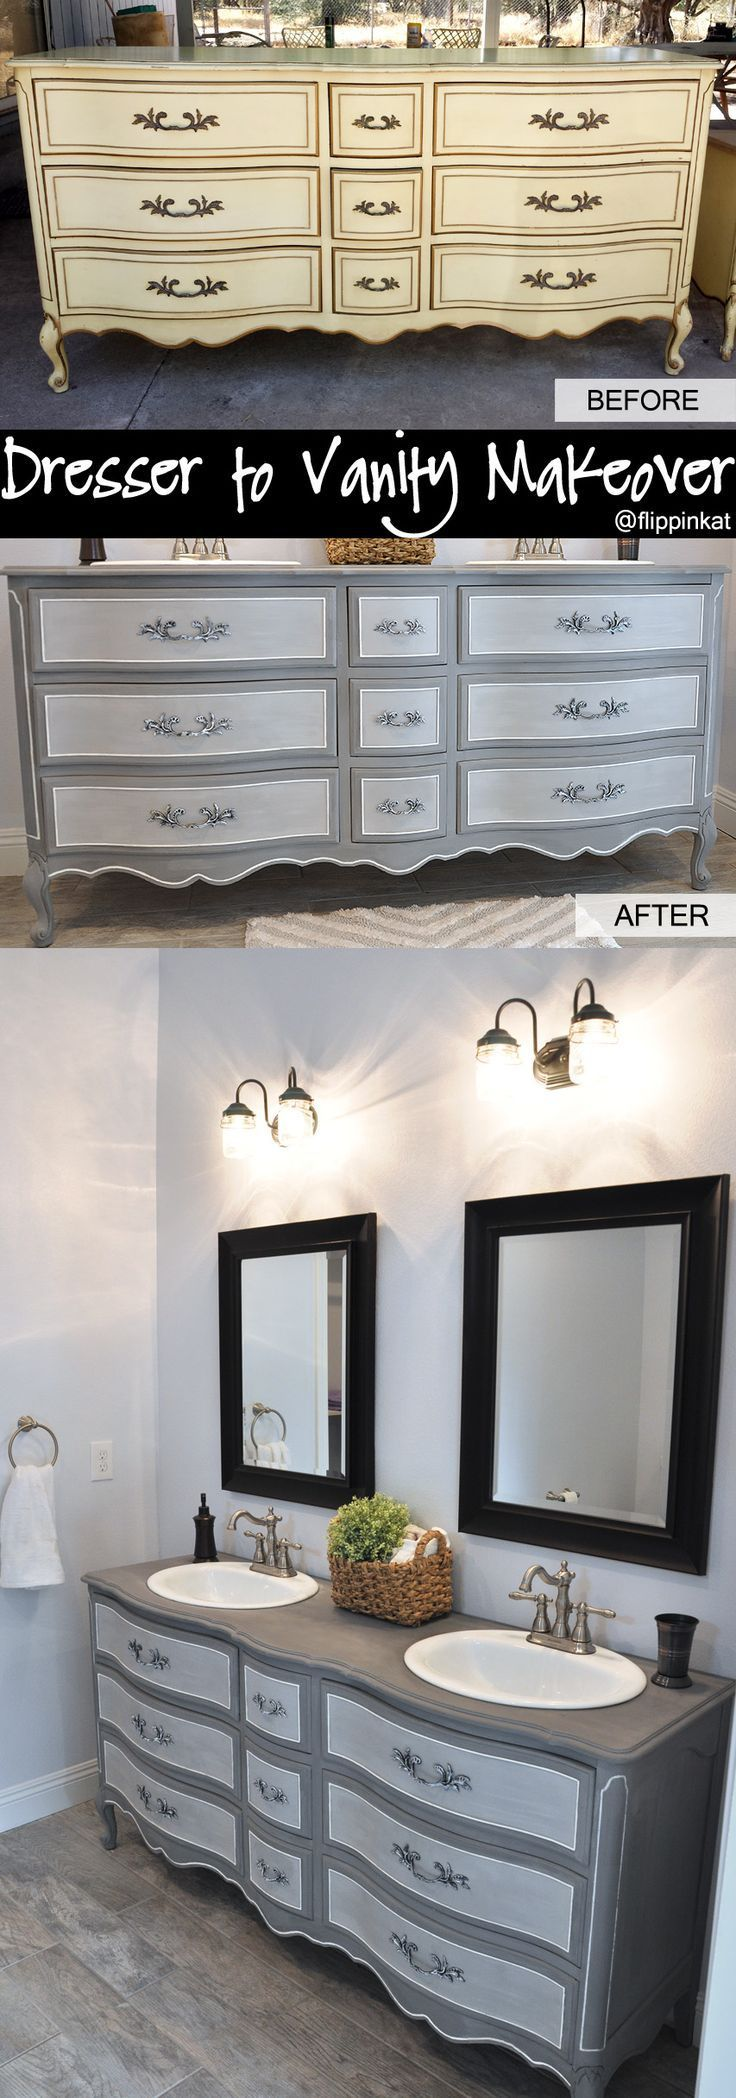 Bathroom Vanity Remodel best 20+ redo bathroom vanities ideas on pinterest | diy bathroom